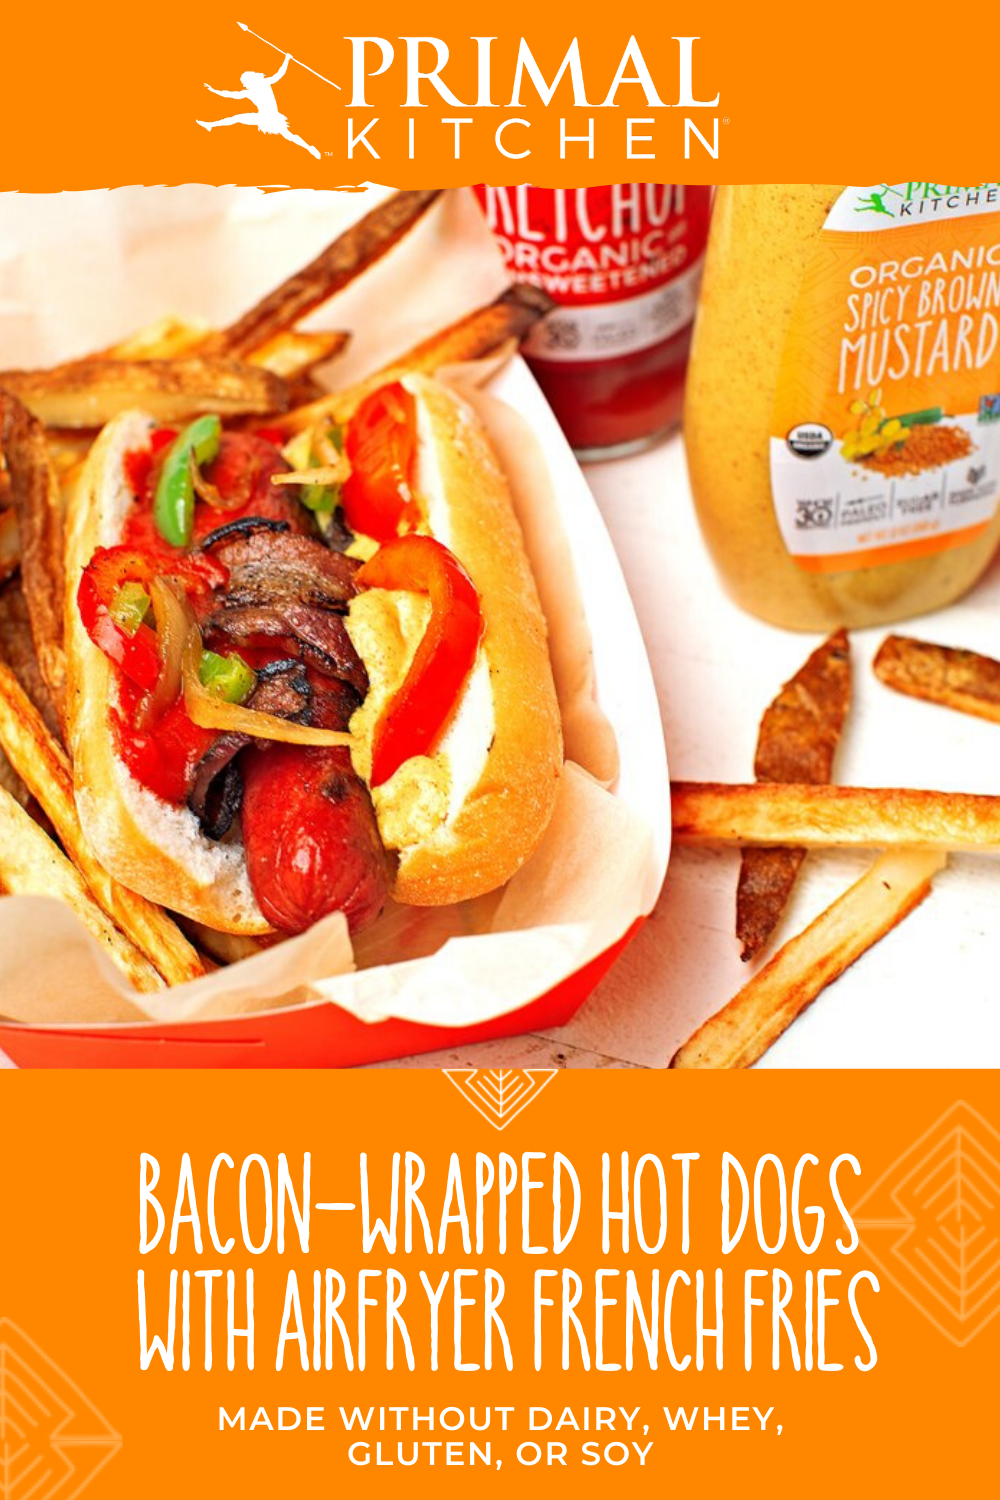 BaconWrapped Hot Dogs with AirFryer French Fries Bacon